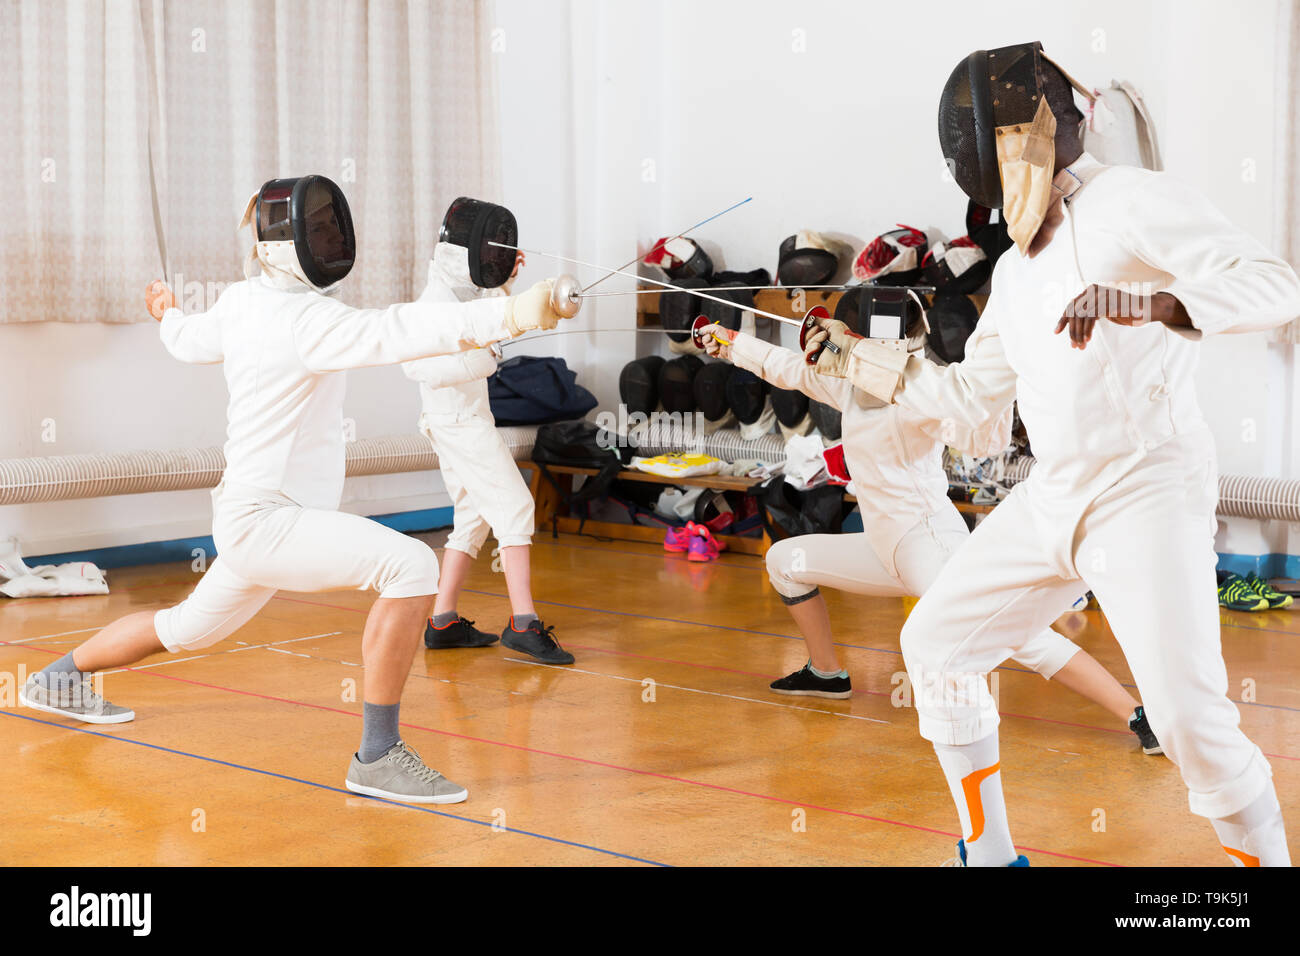 Cheerful group practicing effective fencing techniques in